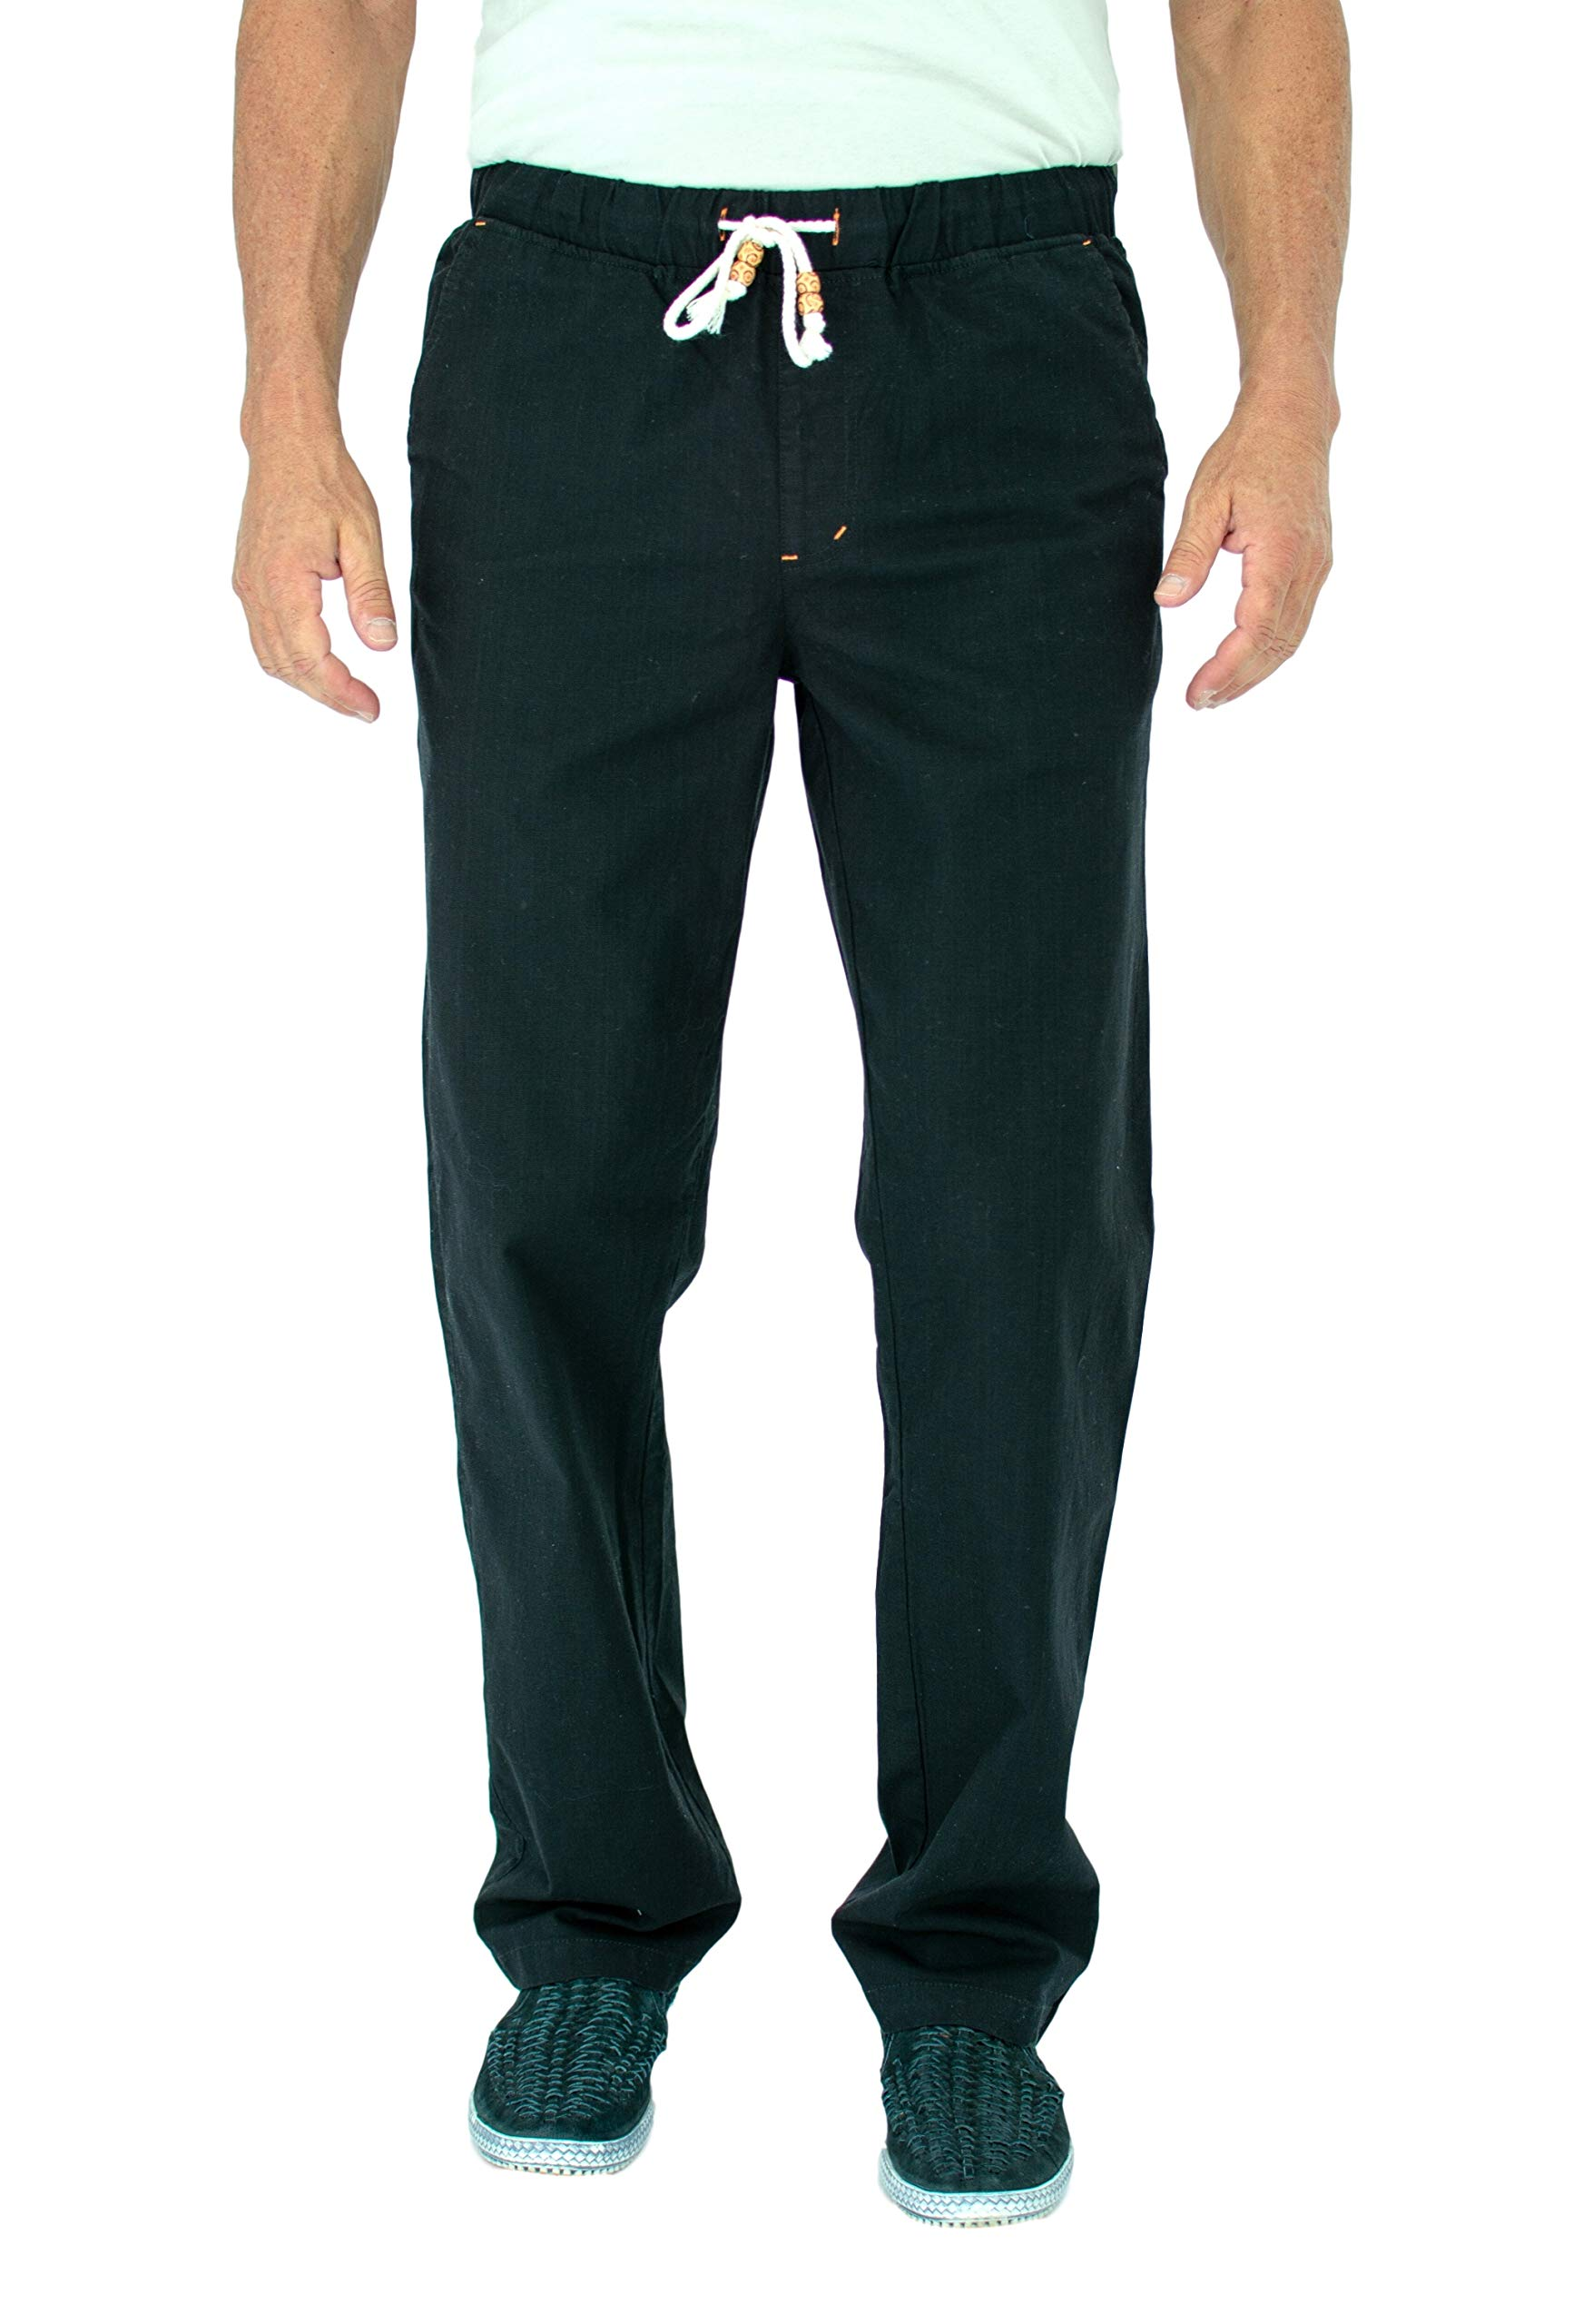 Short Fin Mens Beach Pants W/Full Elastic Waistband. Made with Stretch Cotton (Black Size 34X30 C8023)